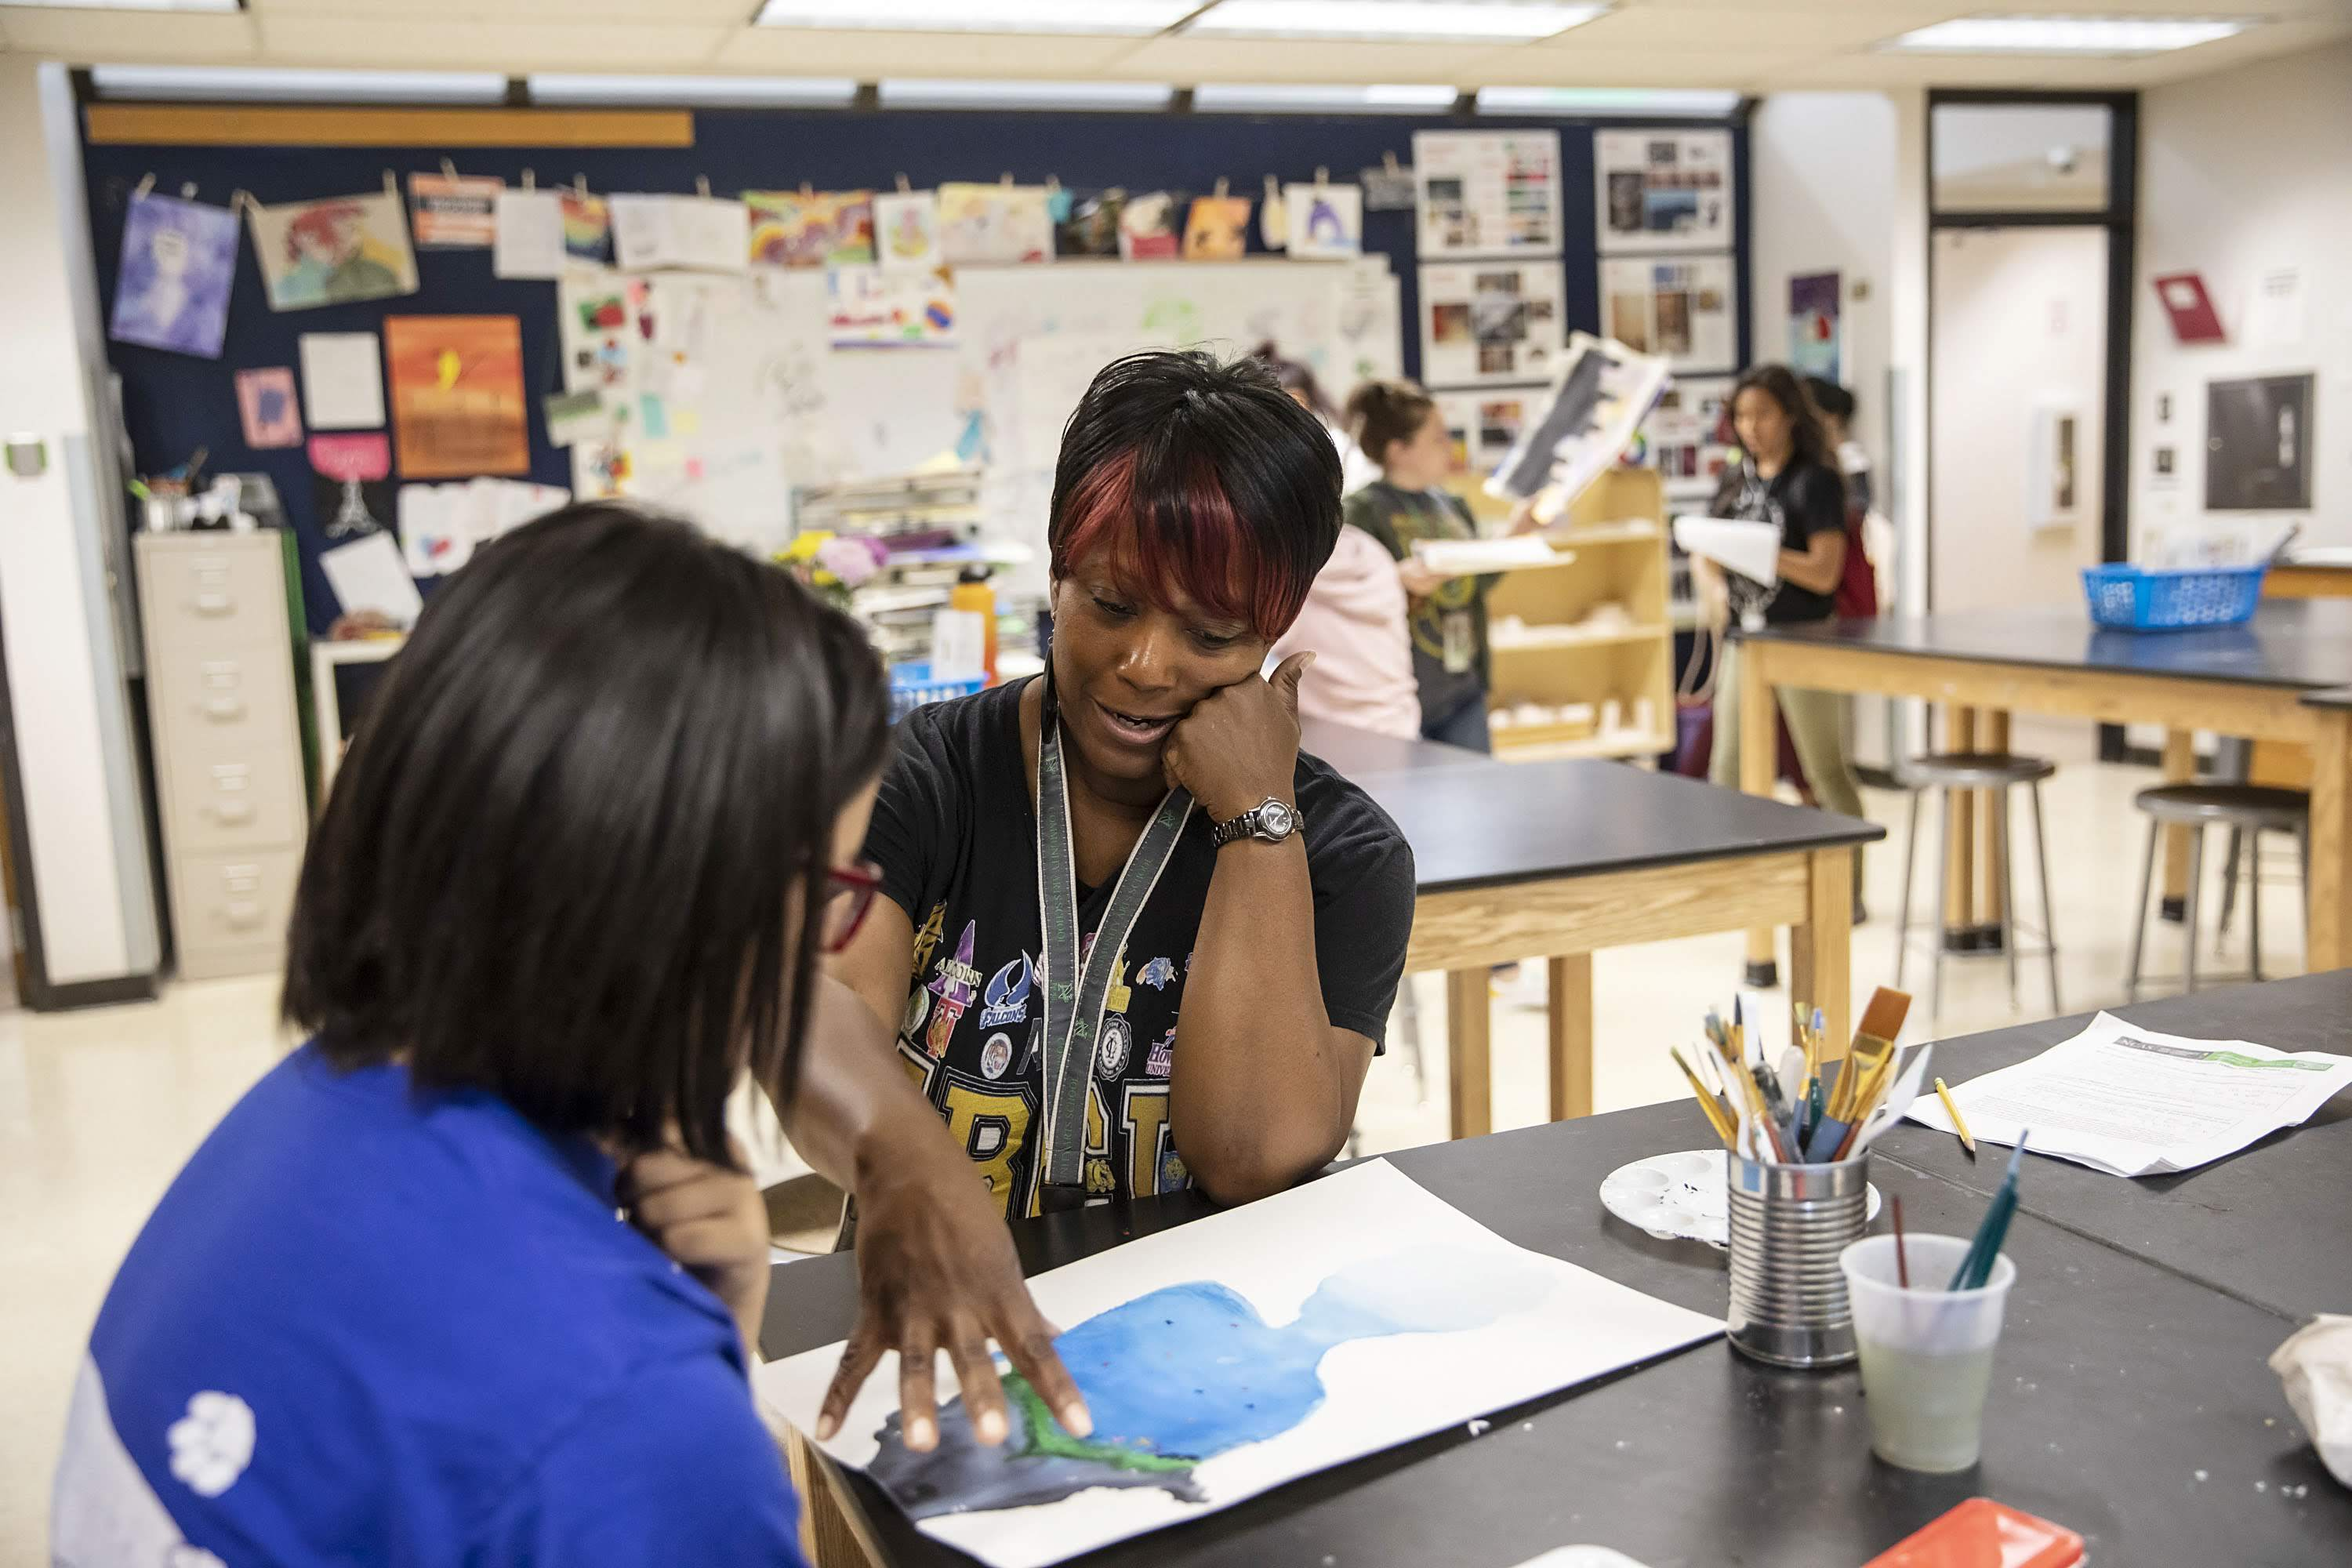 A teacher with a lanyard around her neck works with a student in an art class as they look at a watercolor on a table.